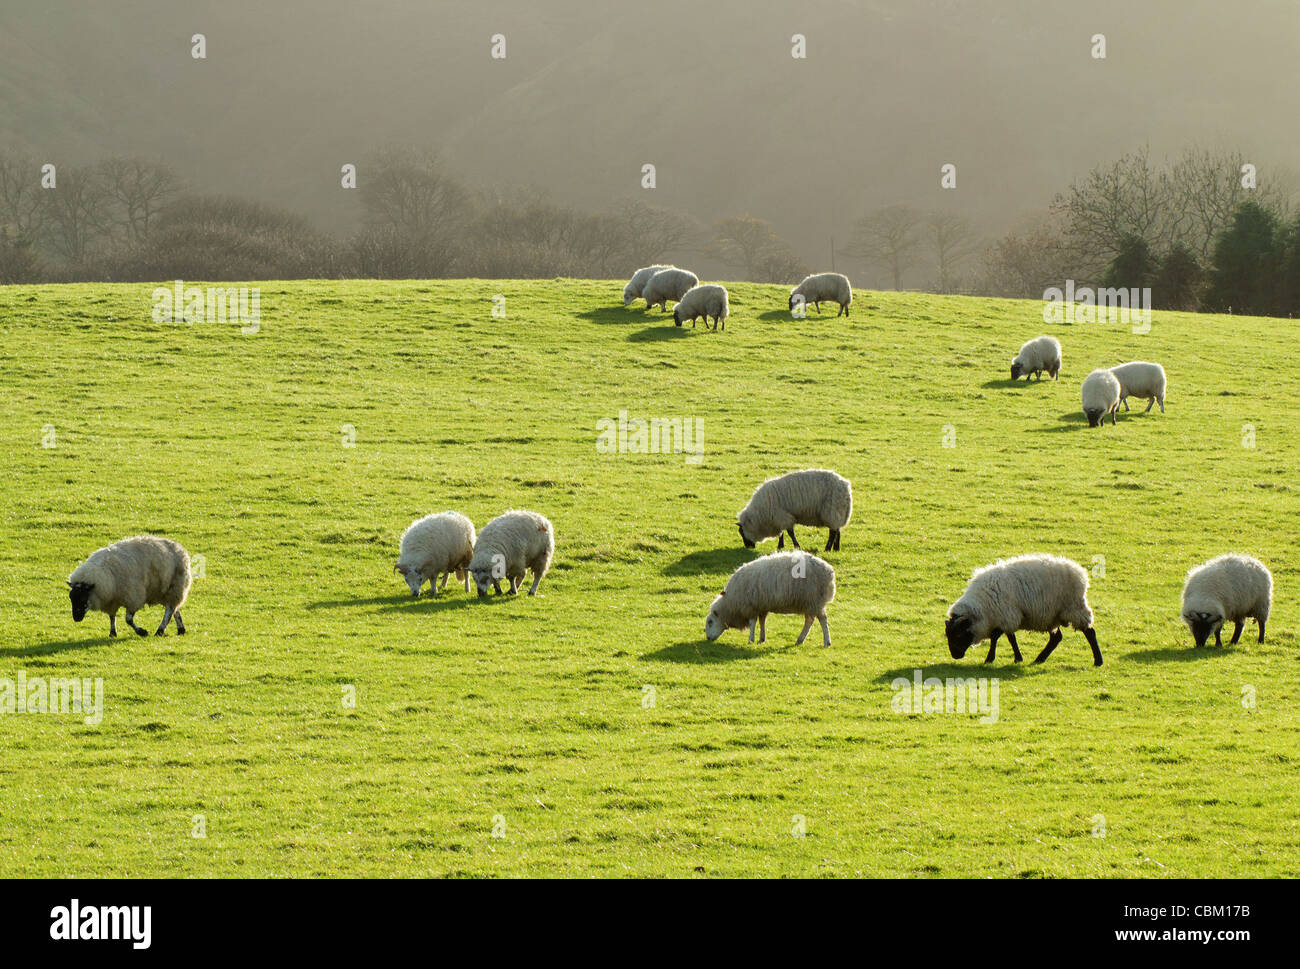 Sheep grazing in a lush green grass field in Wales UK. - Stock Image